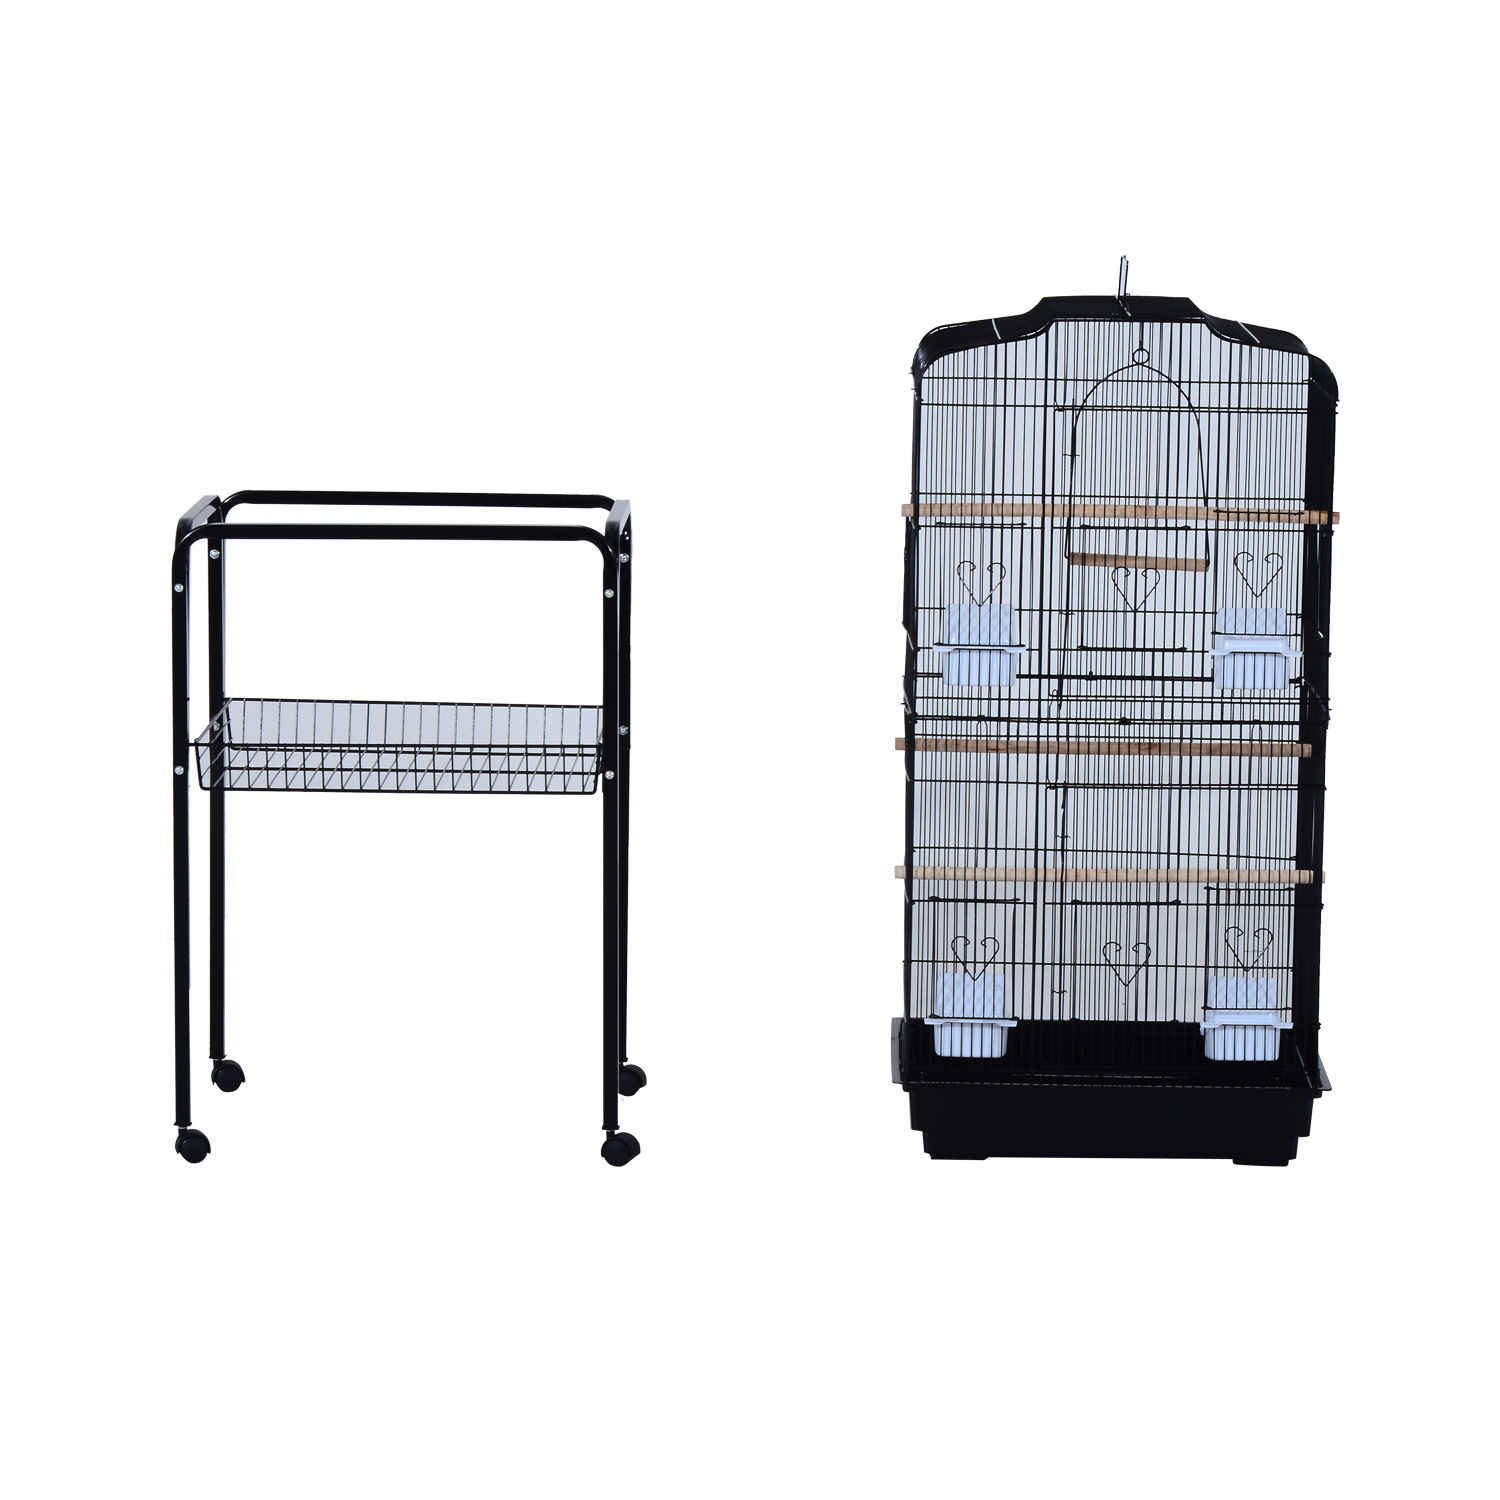 Bird-Cage-63-034-Large-Finch-Parrot-Conure-Metal-Wheels-Play-Top-House-Pet-Supplies thumbnail 4